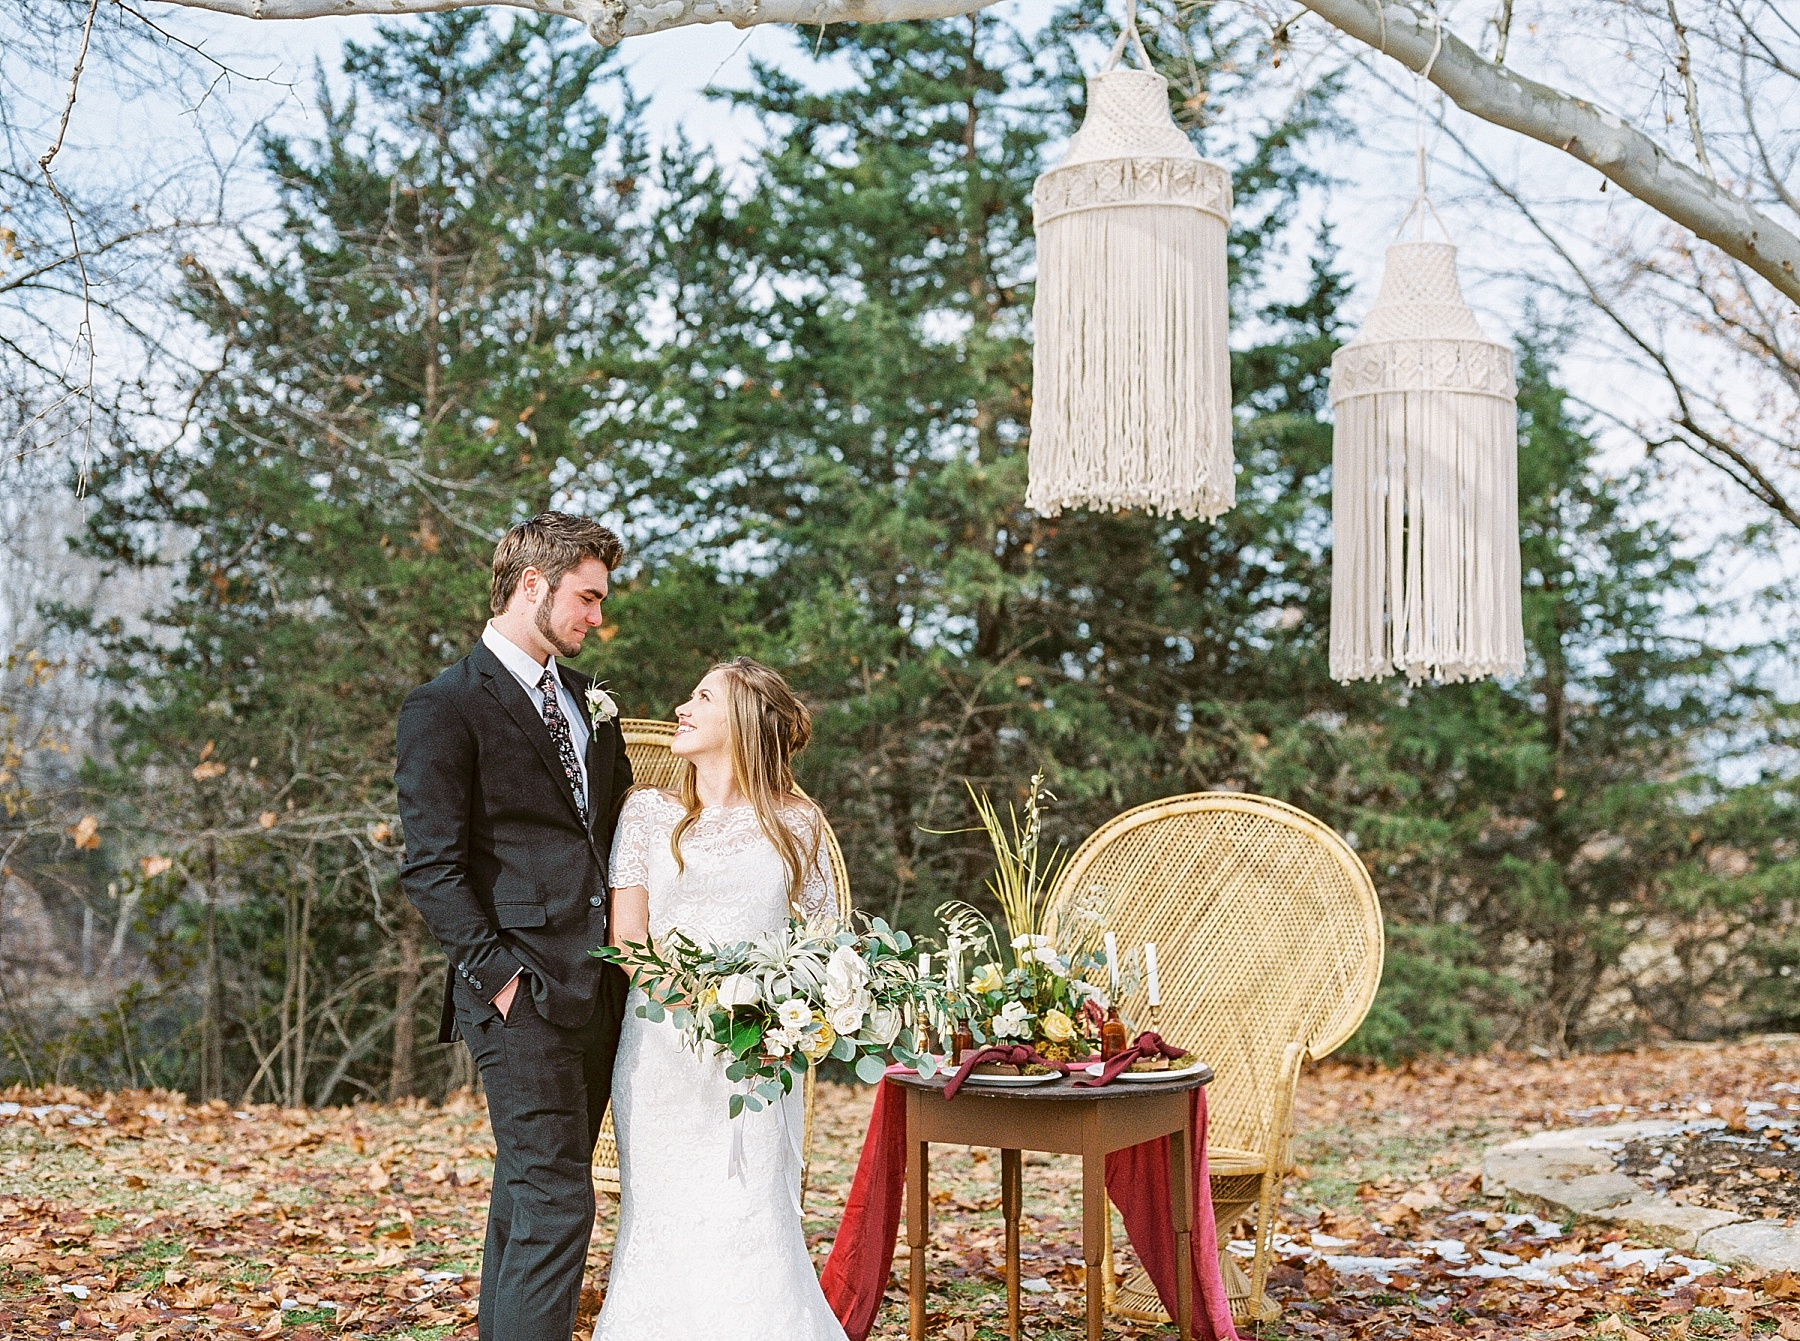 Snowy Winter Wedding at Wildcliff Events Lake With Earthy Jewel Tones and Organic Refined Style by Kelsi Kliethermes Photography Kansas City Missouri Wedding Photographer_0051.jpg